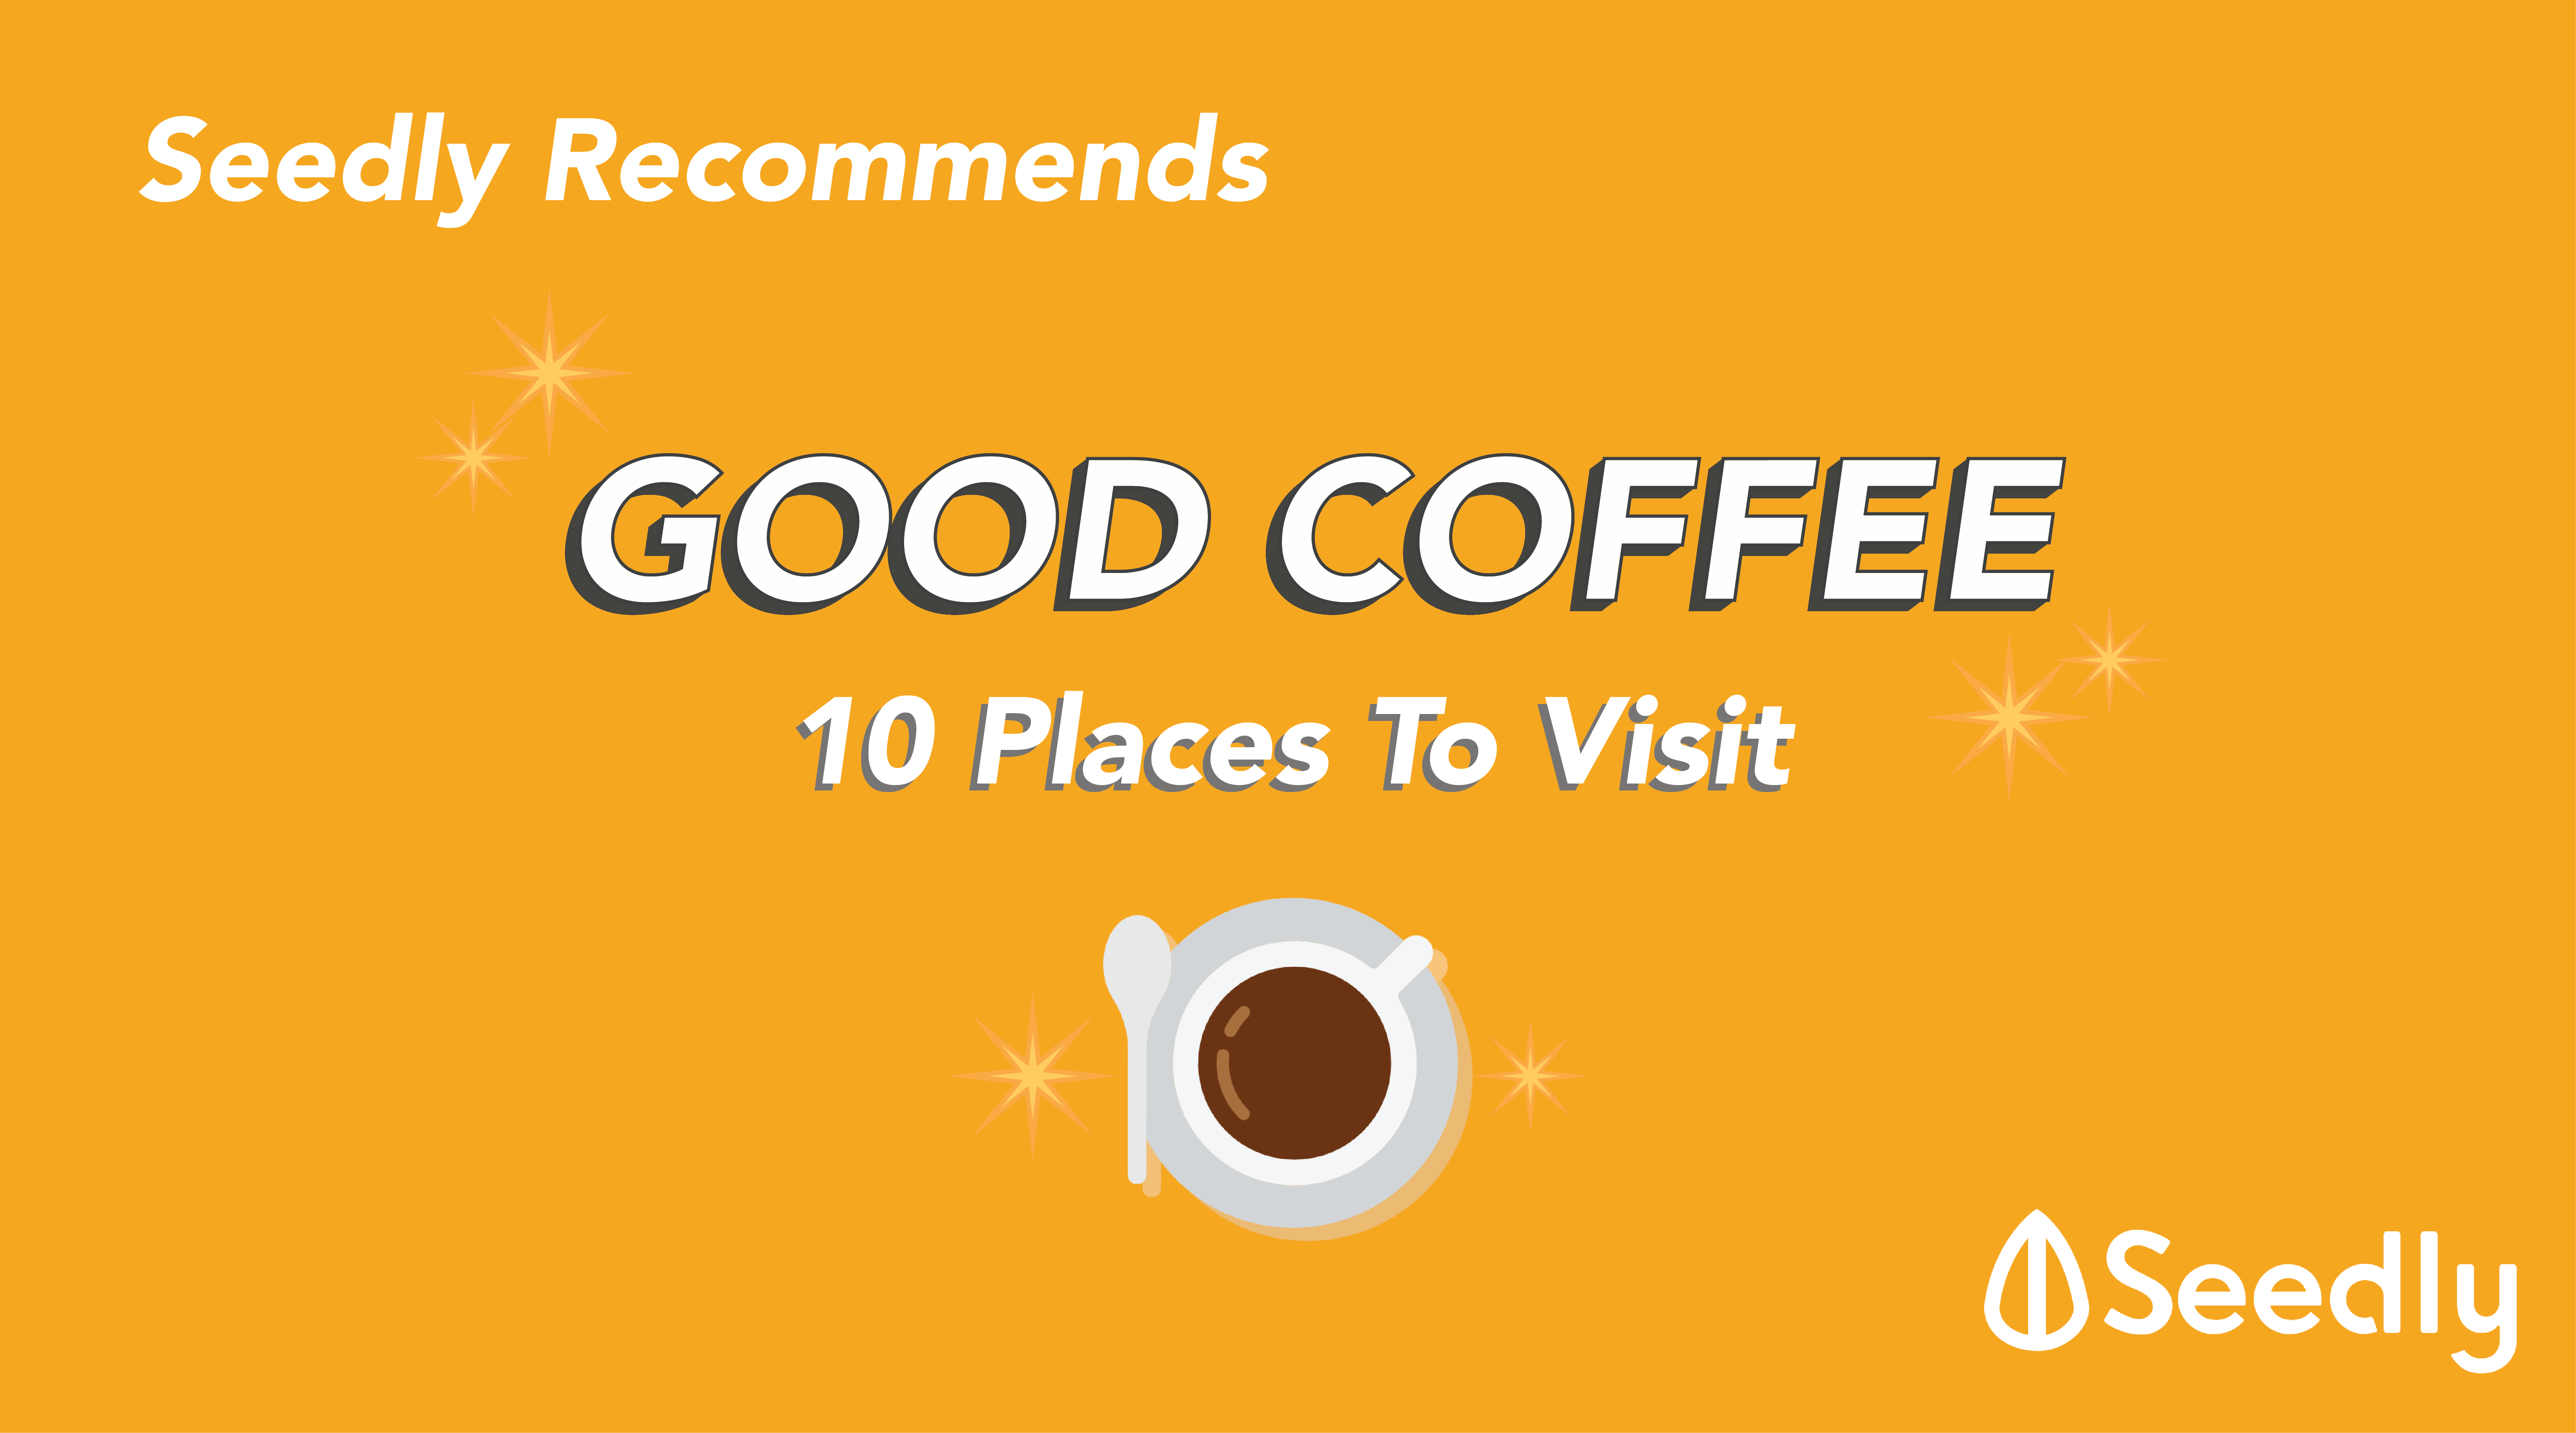 10 Good Coffee Places You Have To Visit: Based On Real User Reviews